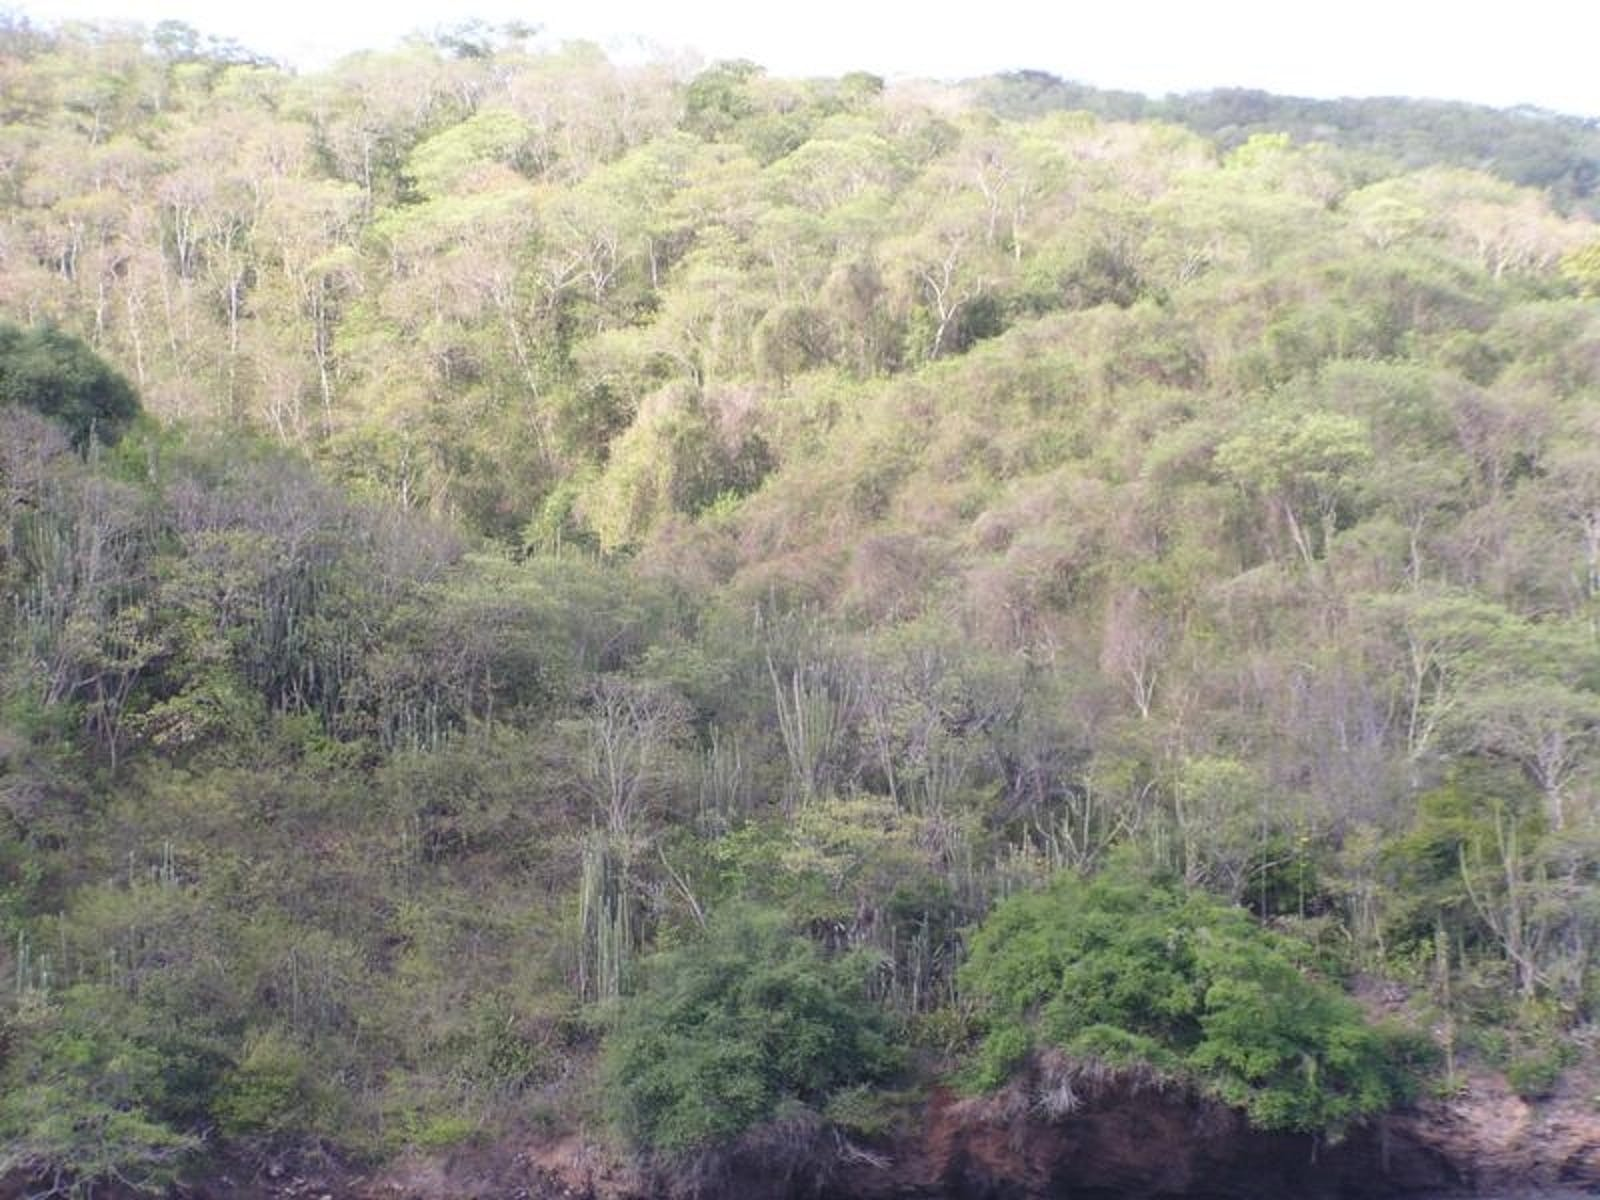 Trinidad and Tobago Dry Forests